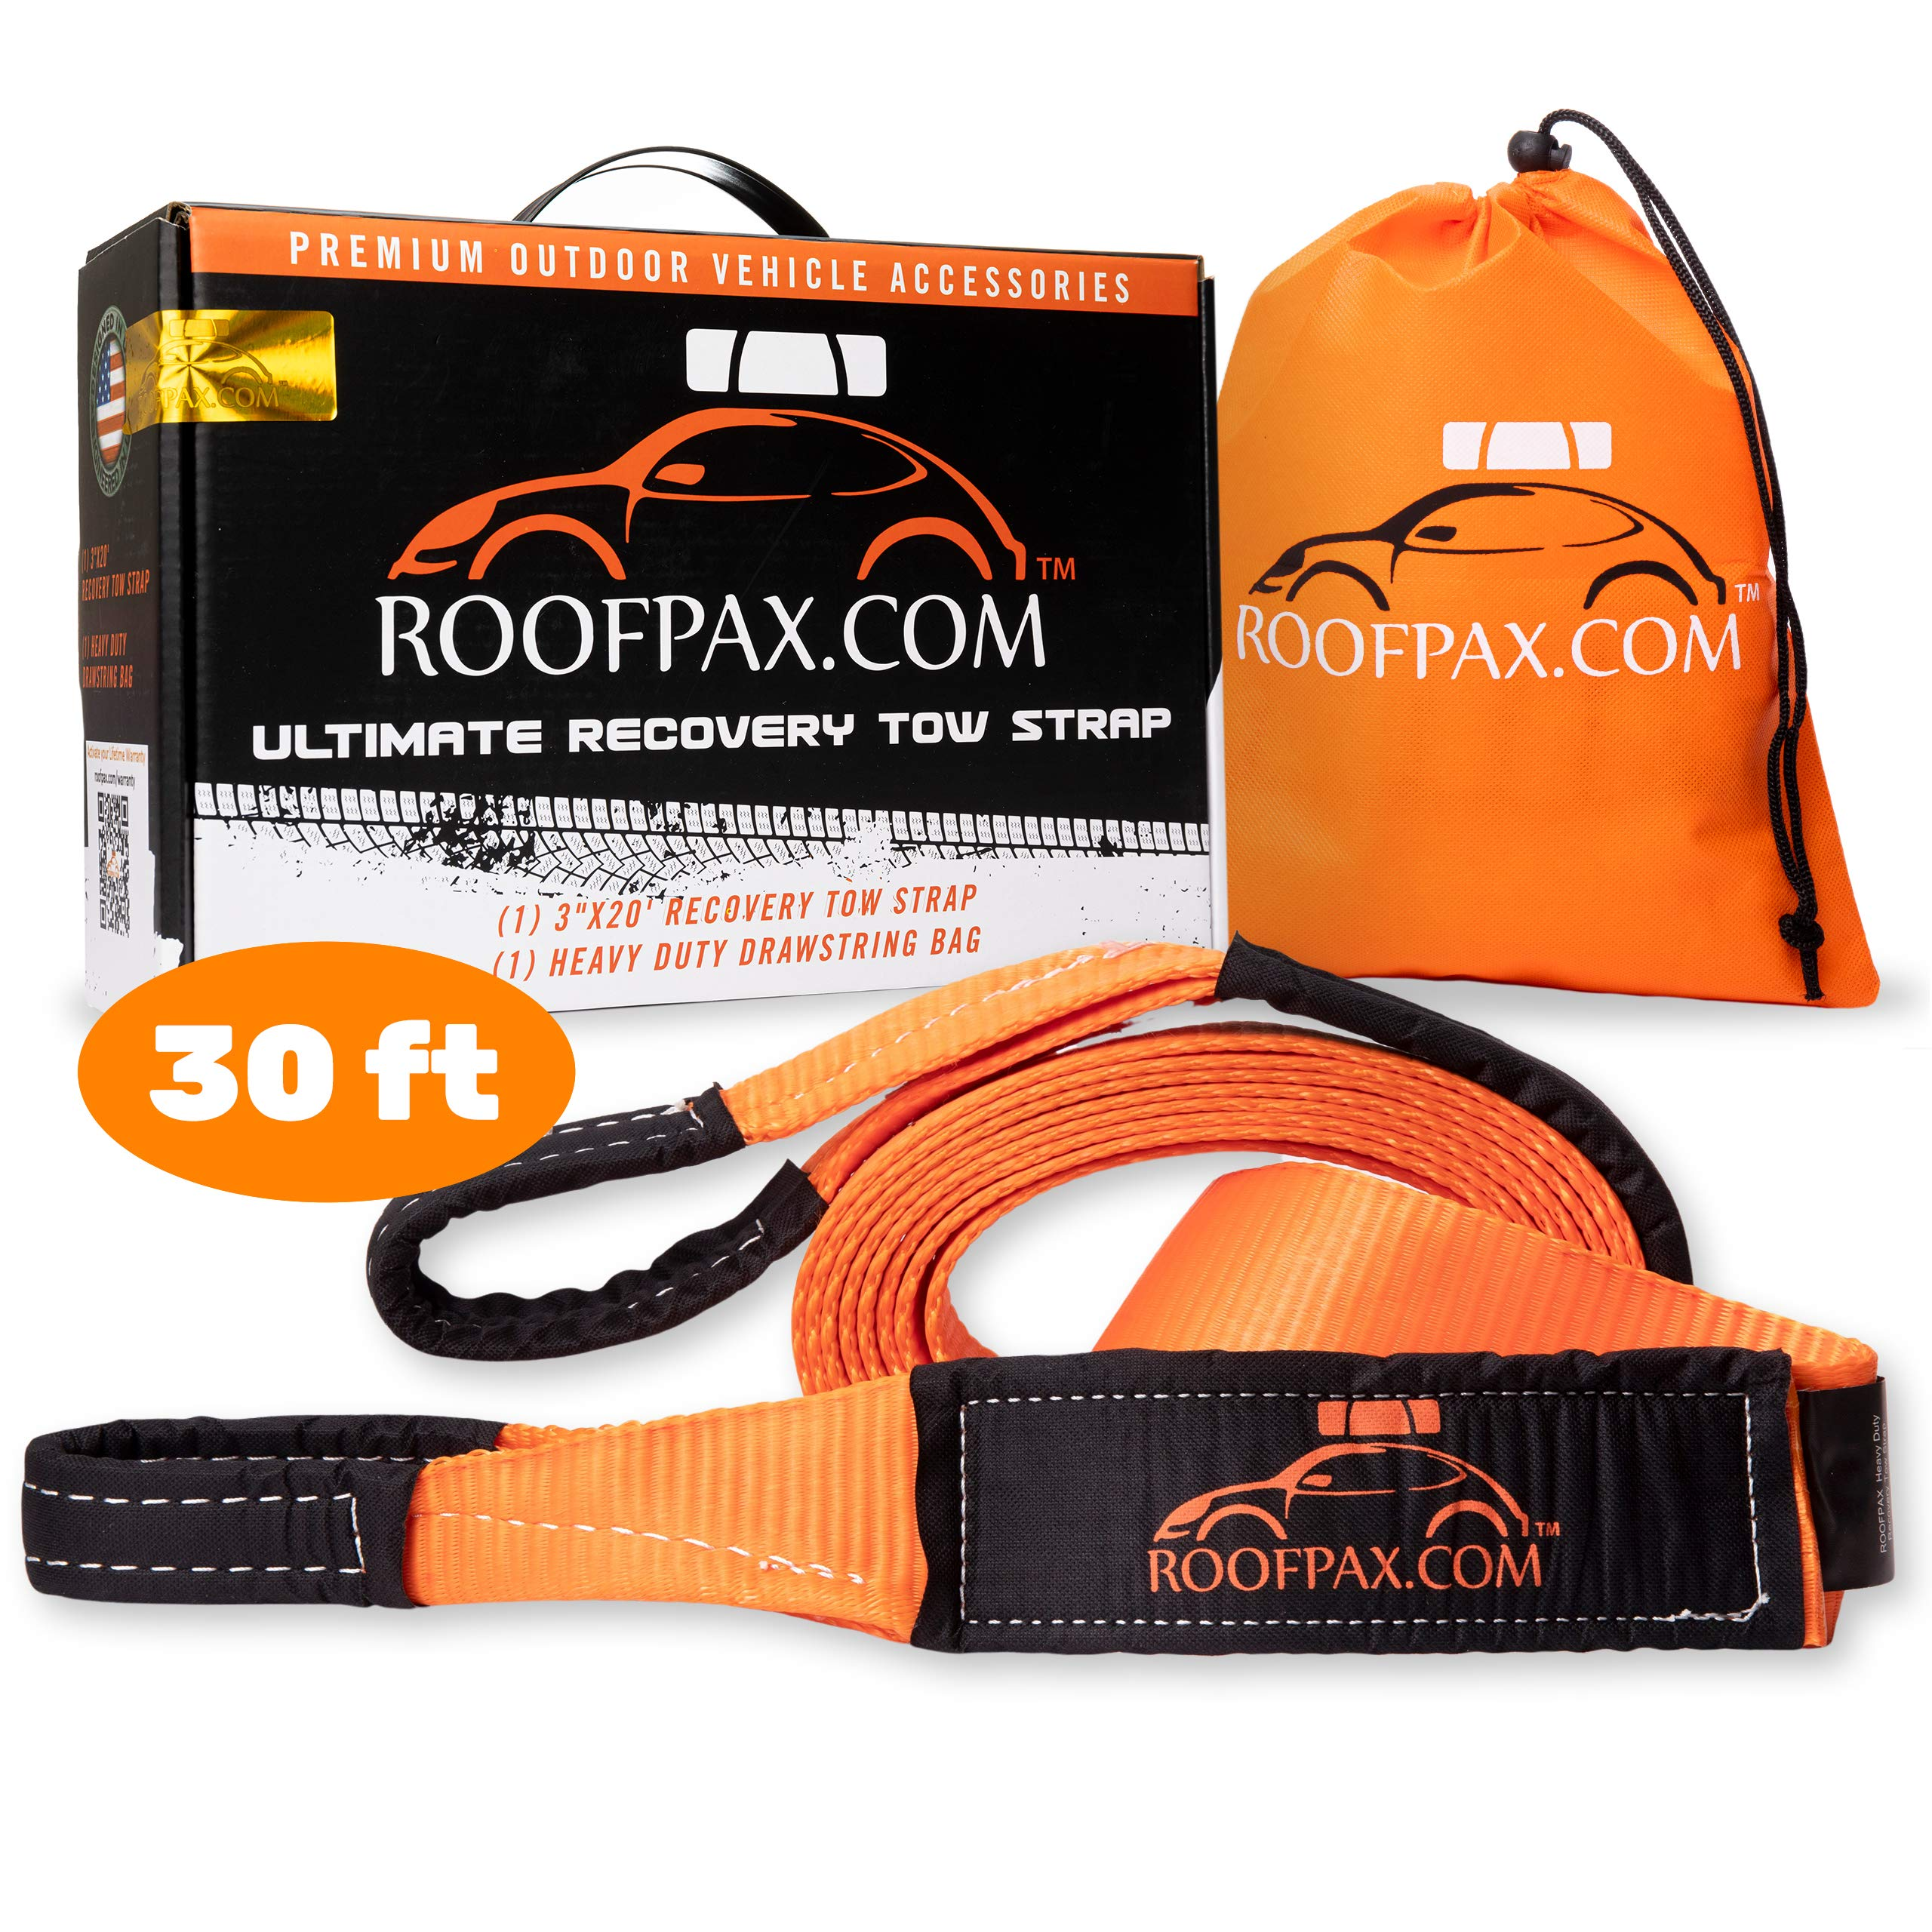 RoofPax Tow Strap 3'' x 30 ft. Off Road Recovery Rope | 30,180 lb Break Strength Capacity | Heavy Duty Winch Strap with Triple Reinforced End Loops | Essential Recovery Kit for Getting Off-Road by RoofPax